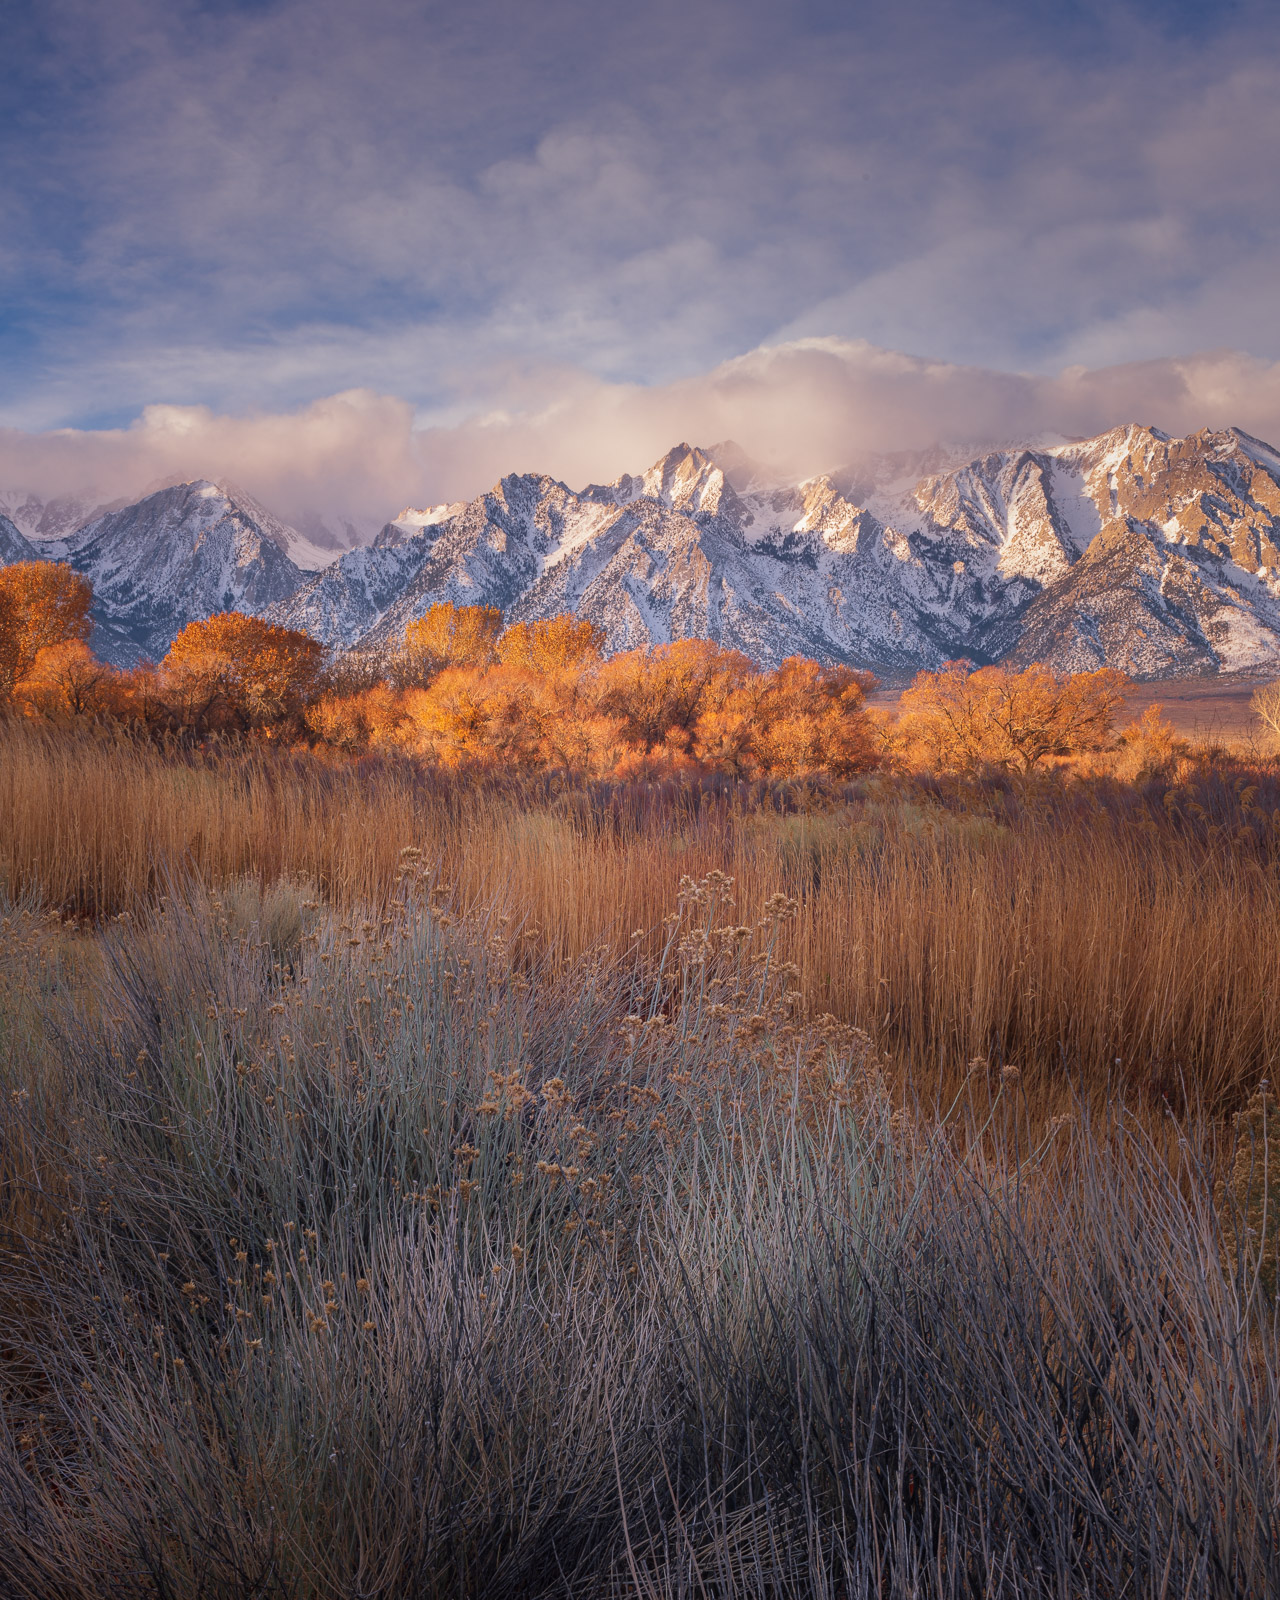 The Eastern Sierra rise above sage and cottonwoods in the Owens Valley.